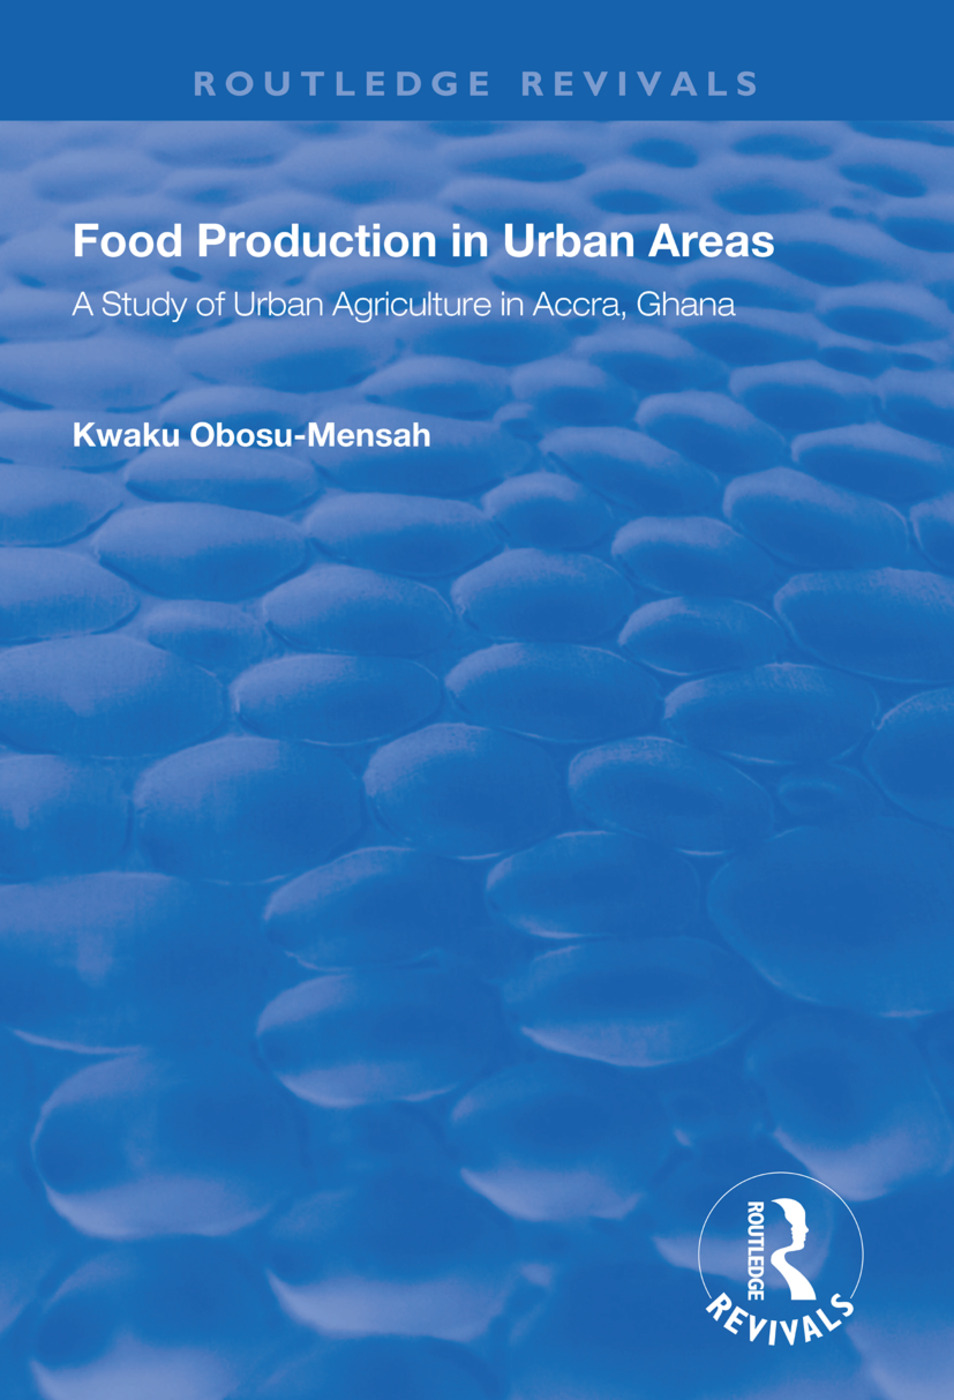 Food Production in Urban Areas